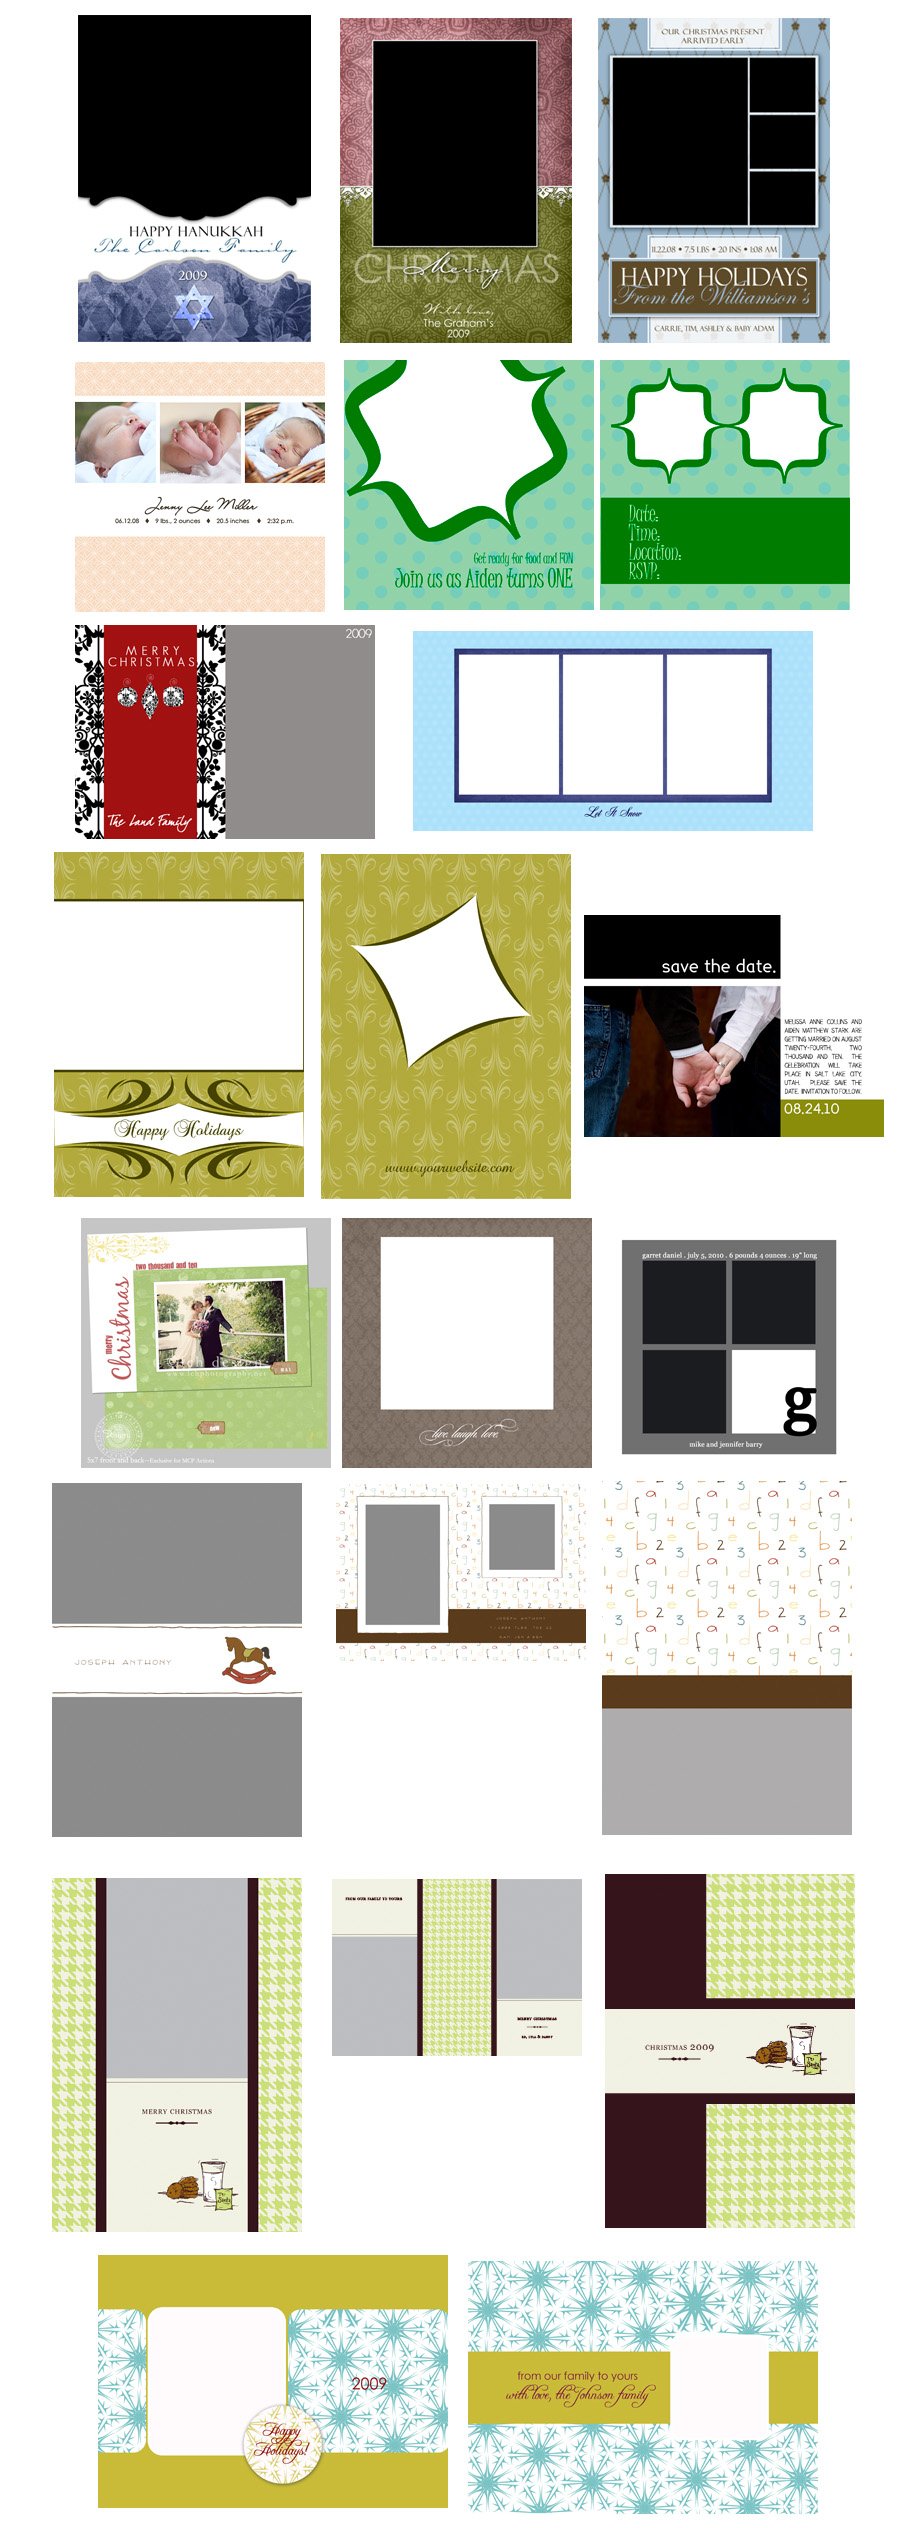 sample2-ad MCP's Card & Template Workshop {26 designs included} Announcements Discounts, Deals & Coupons Photoshop Tips & Tutorials Workshops